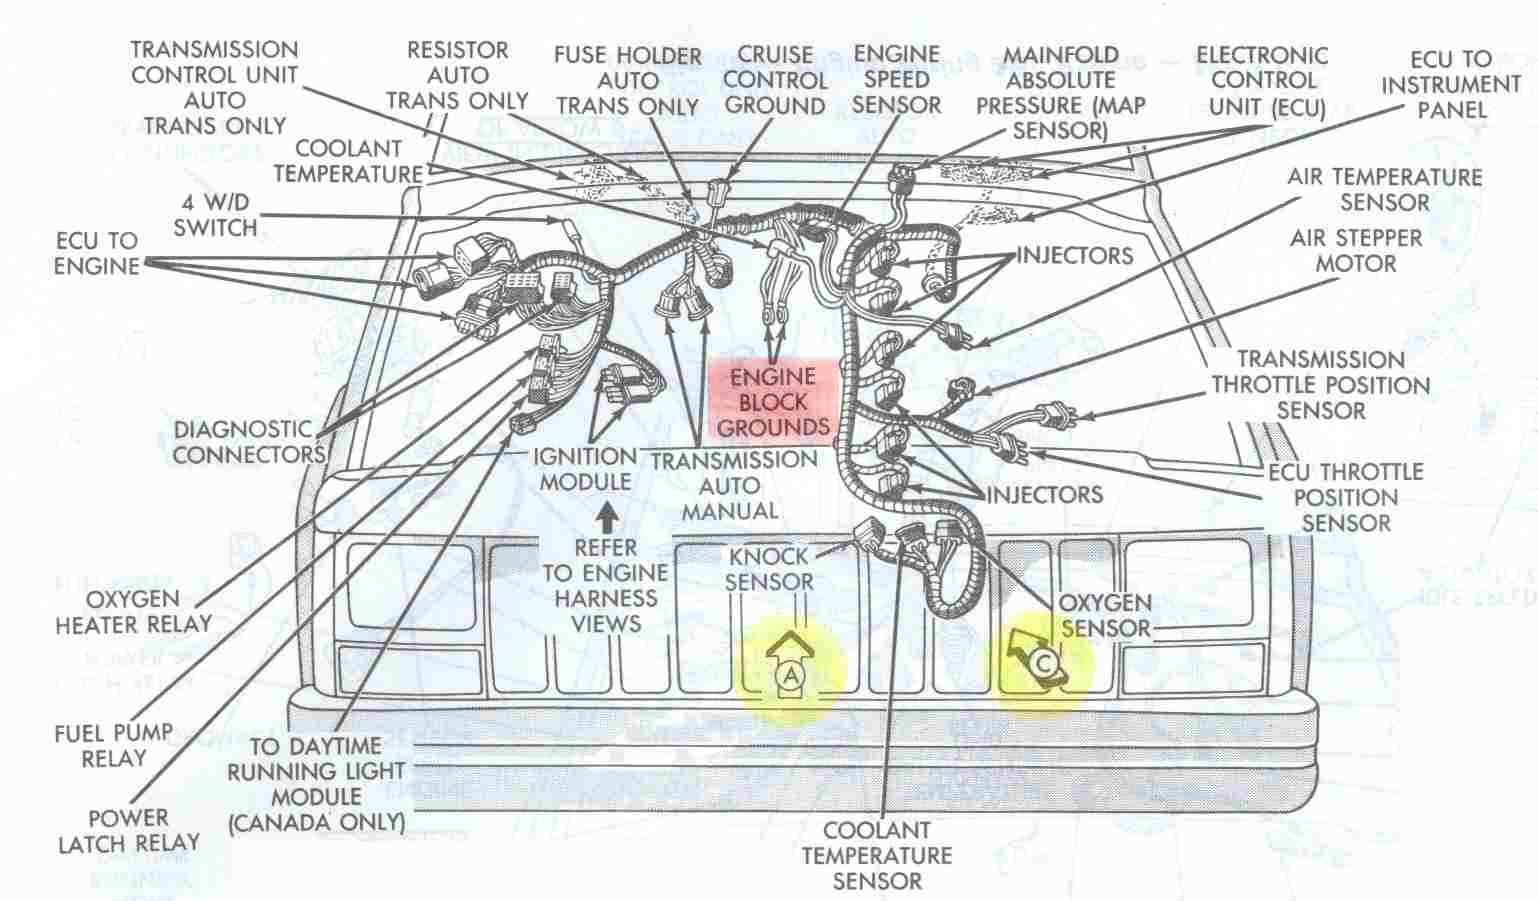 hight resolution of clifford 570 4x wiring diagram wiring library 96 jeep cherokee wiring diagram 1999 jeep grand cherokee headlight wiring diagram